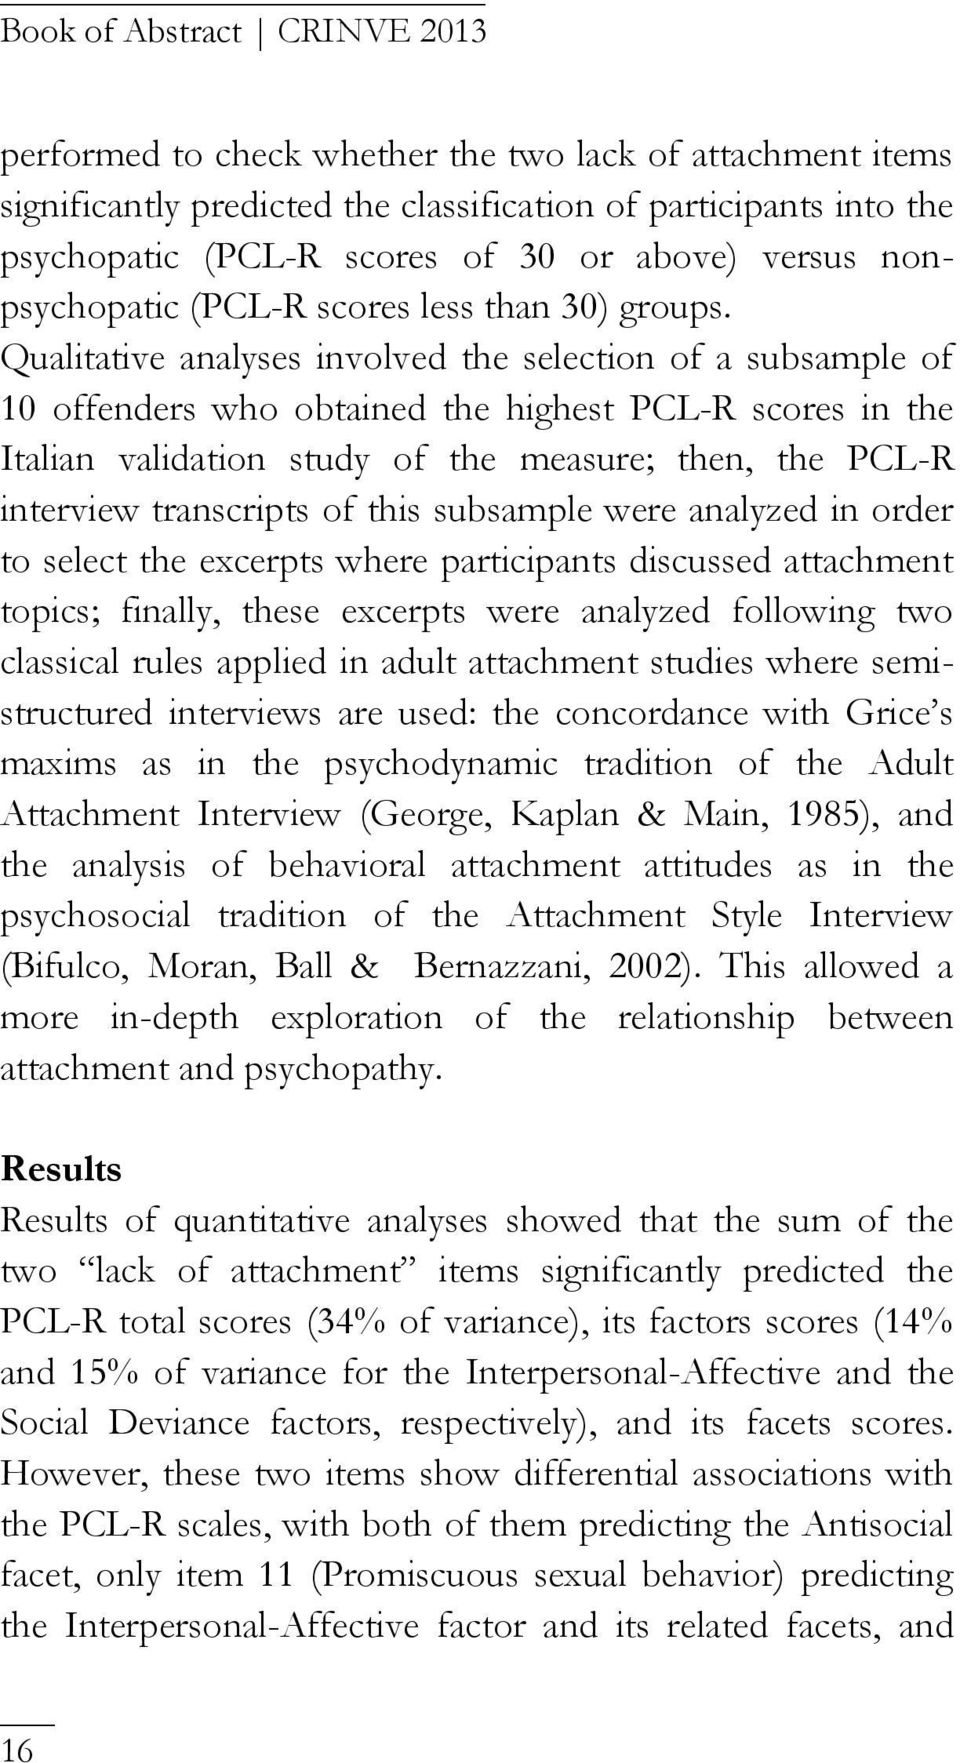 Qualitative analyses involved the selection of a subsample of 10 offenders who obtained the highest PCL-R scores in the Italian validation study of the measure; then, the PCL-R interview transcripts